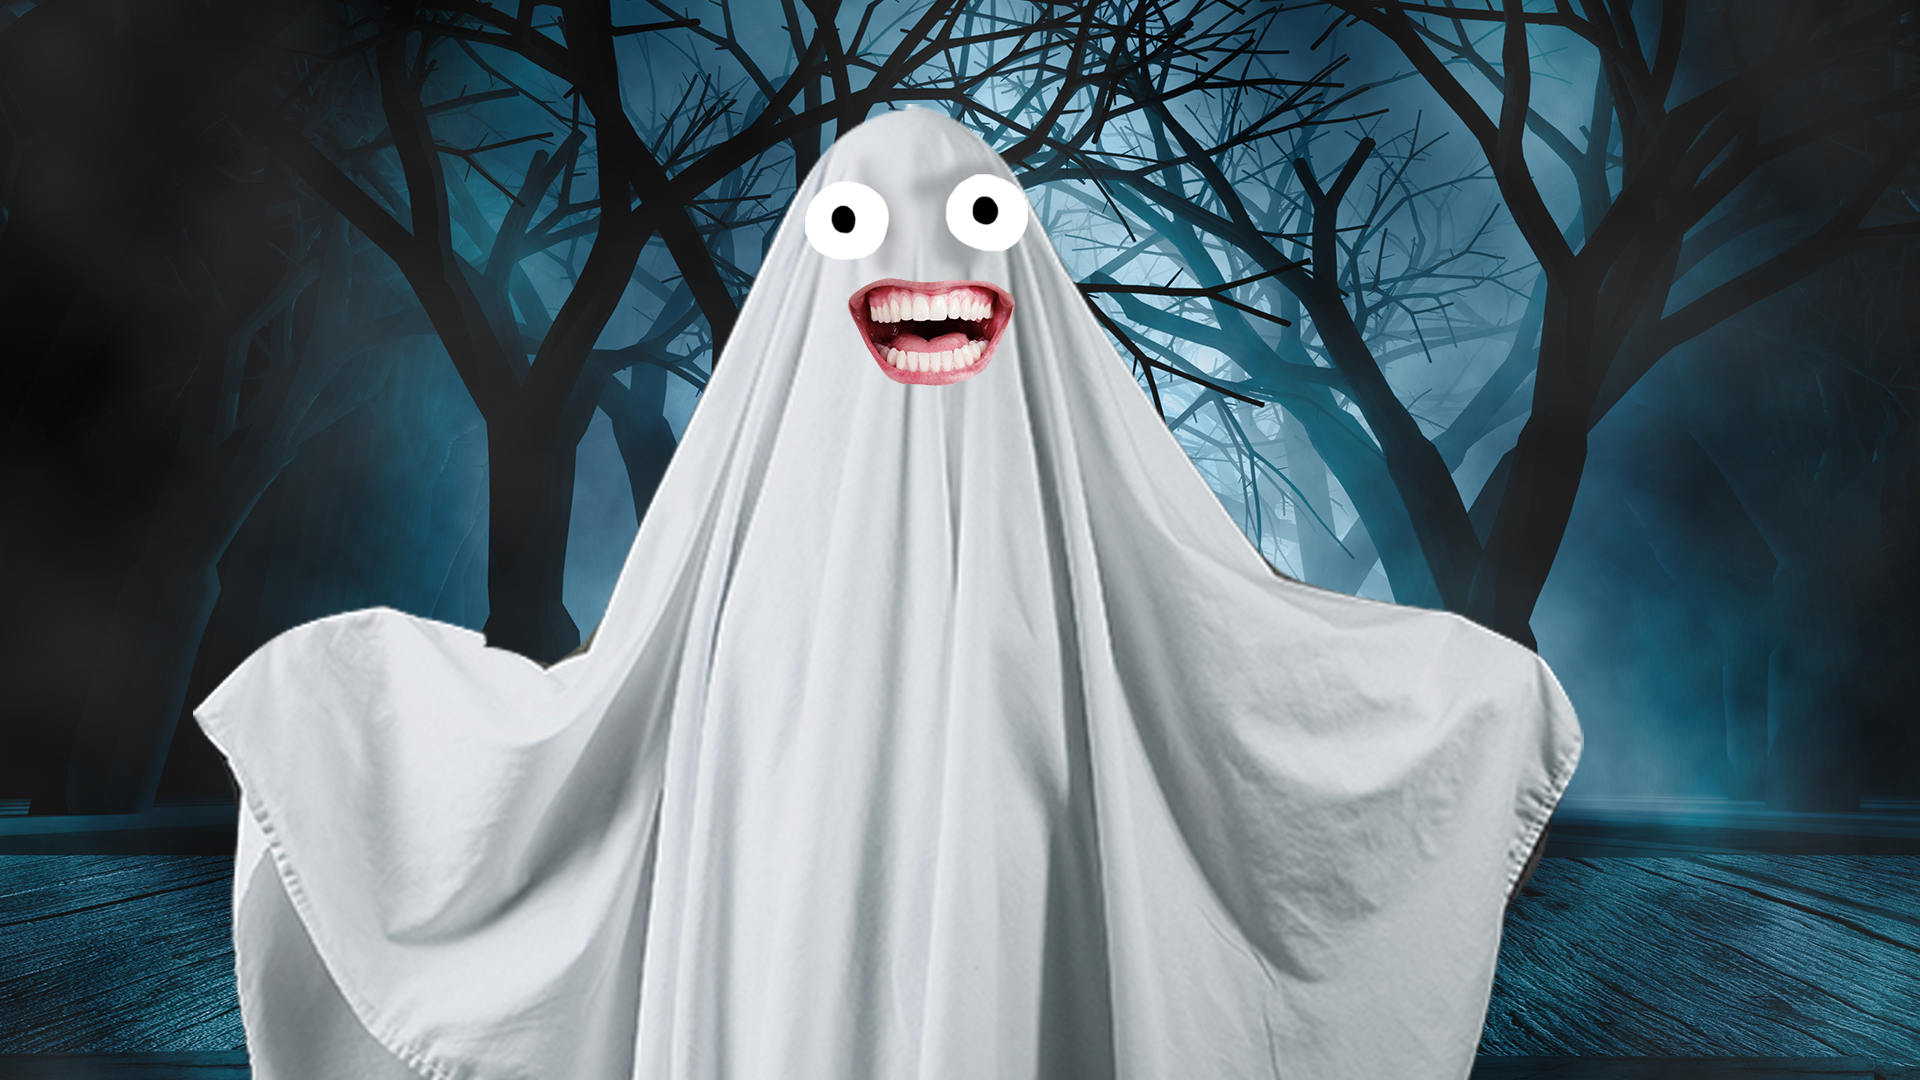 A grinning white ghost